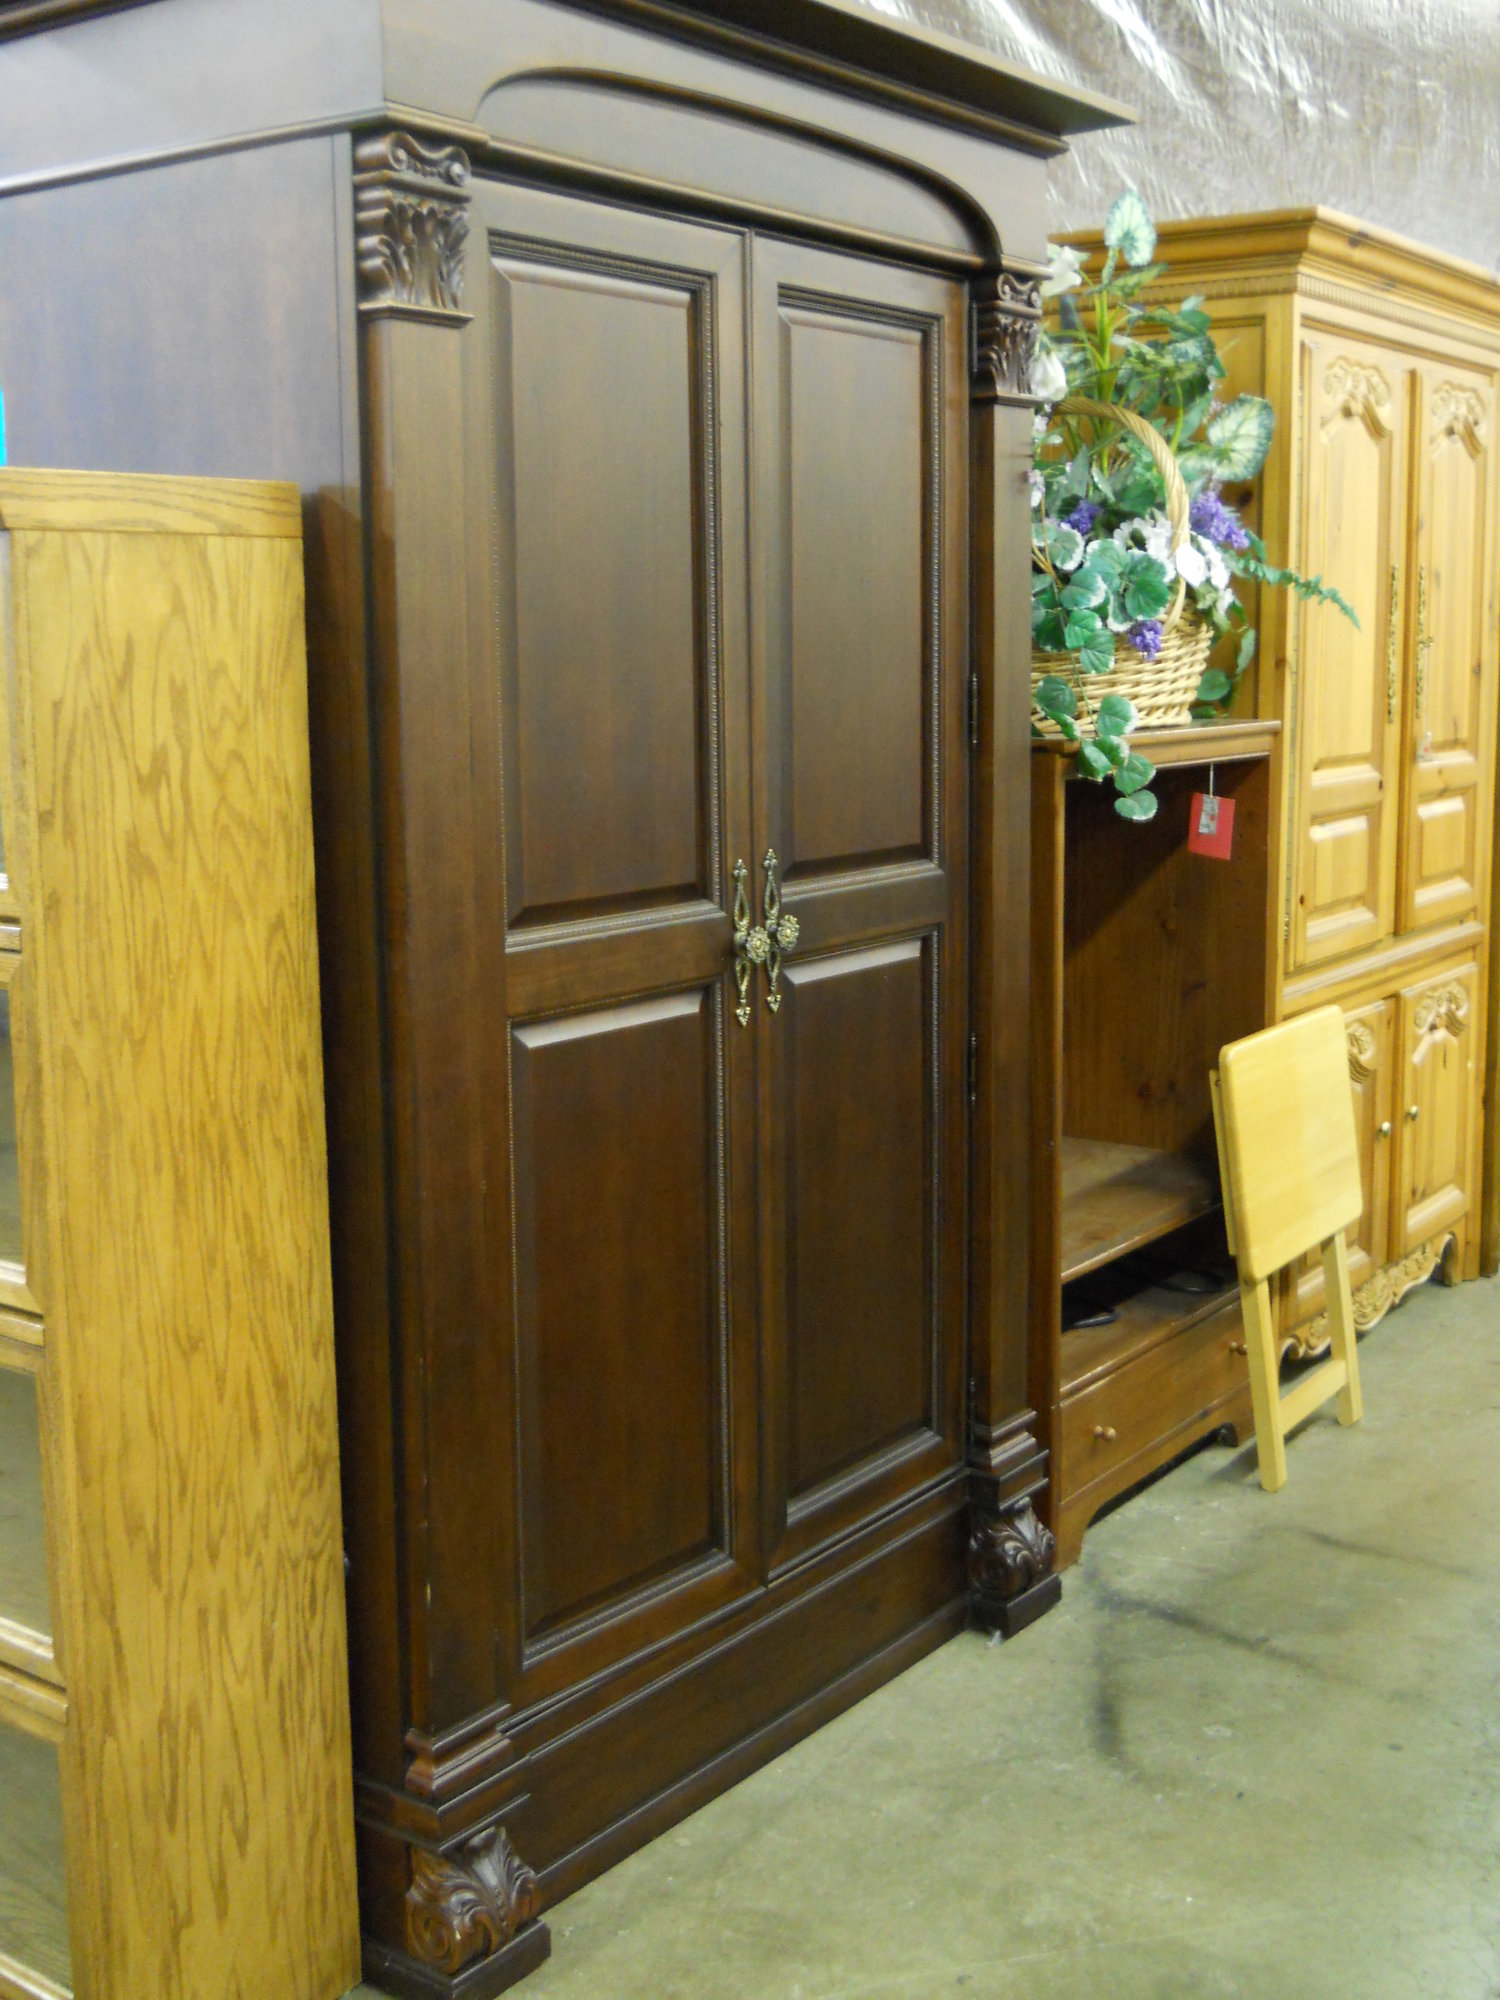 1 13586 Thomasville Transitional Armoire Is Sold